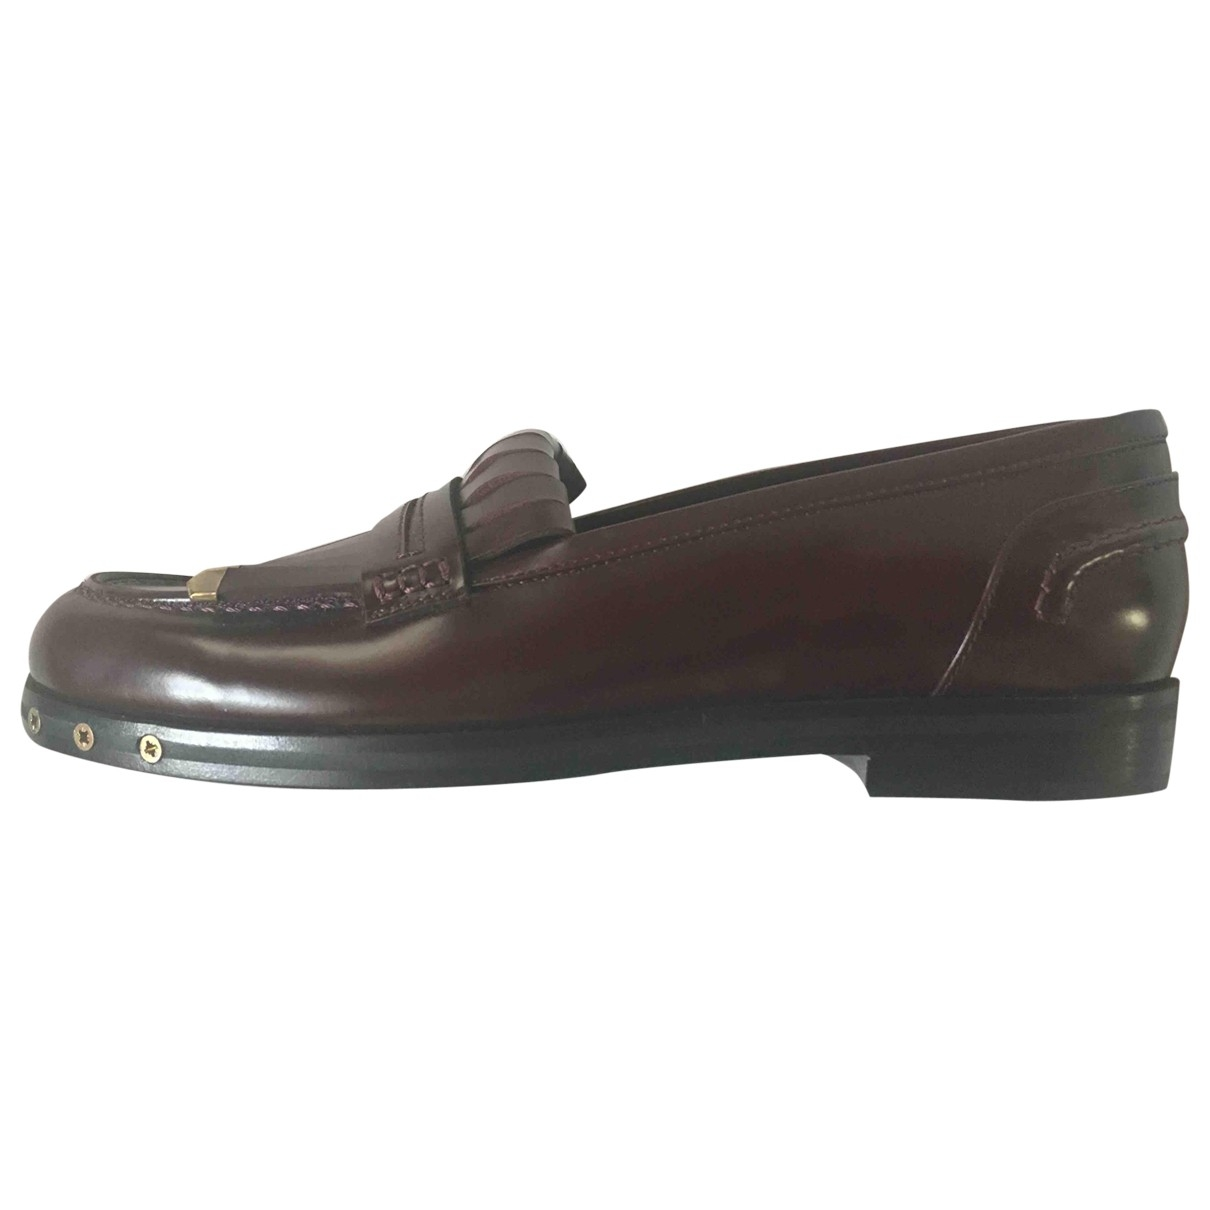 Lanvin \N Burgundy Leather Flats for Women 36 EU